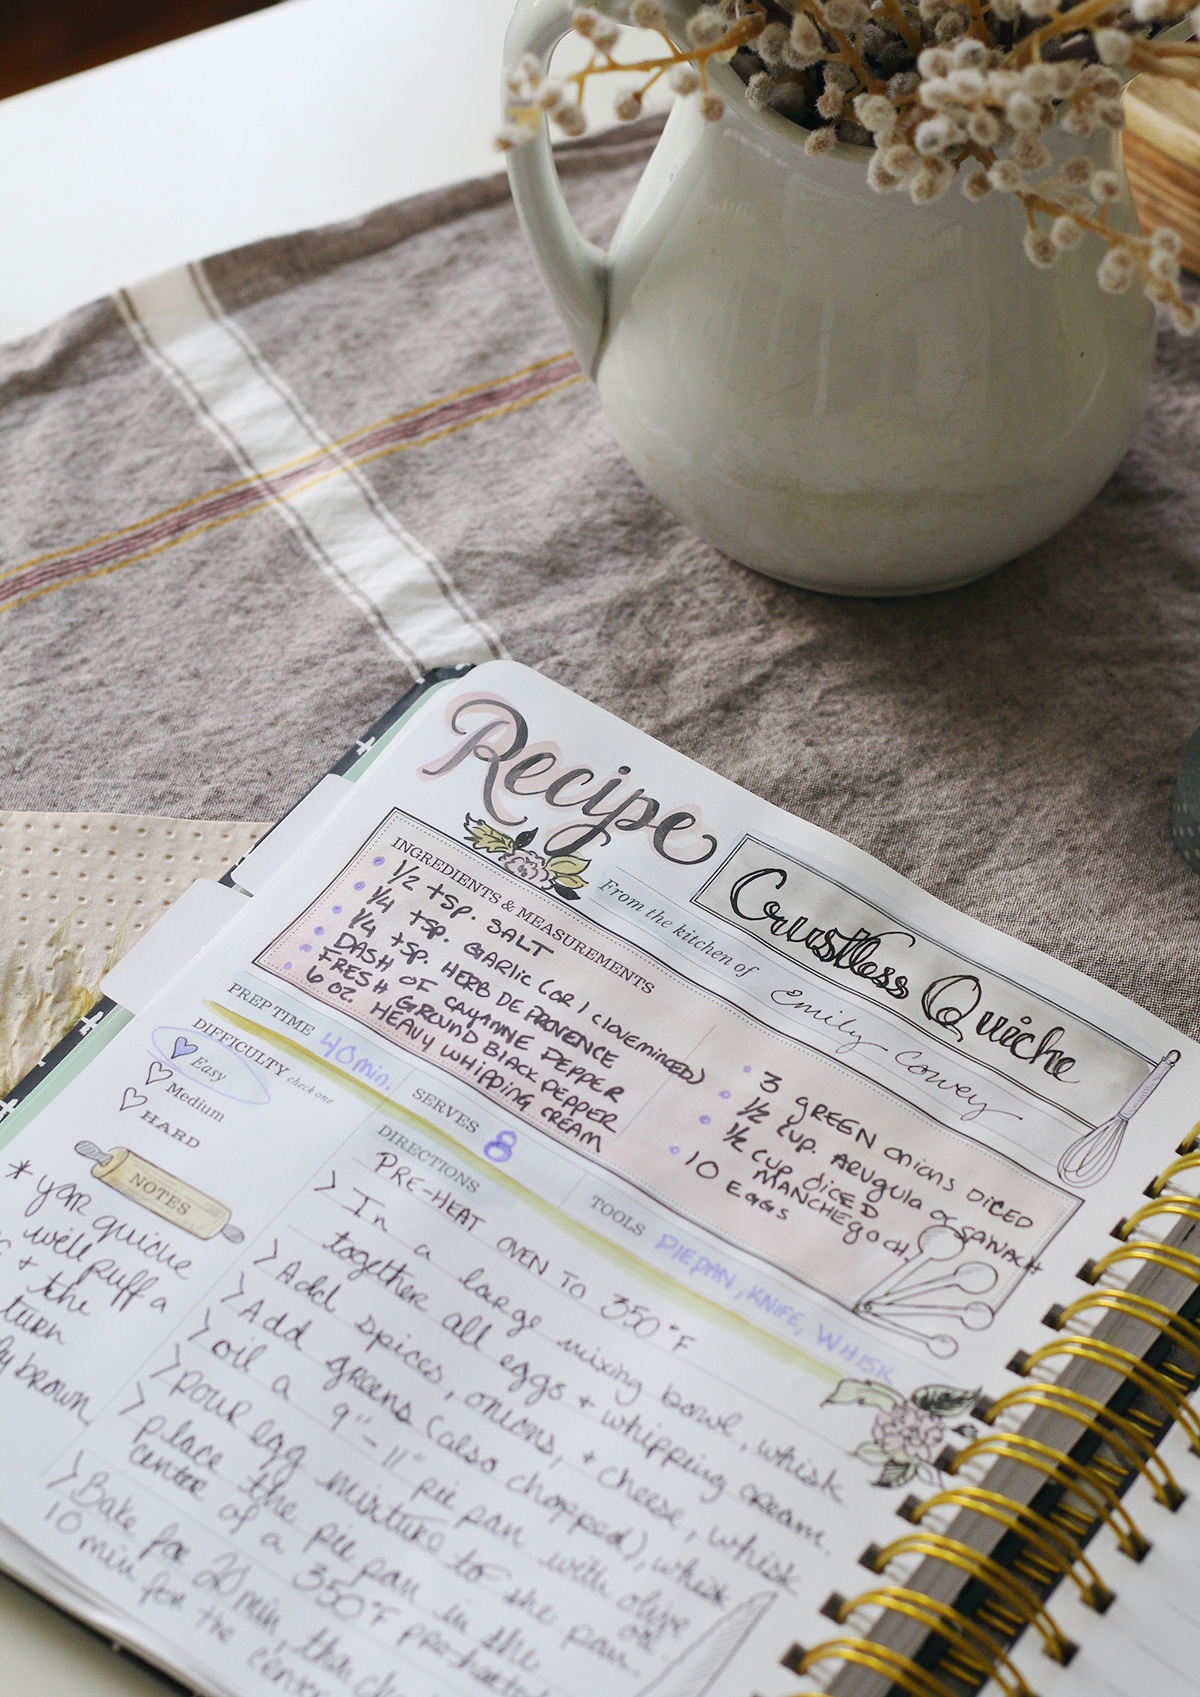 Crustless Quiche Recipe Crafted & Hand-Written in The Keepsake Kitchen Diary - a Family Cookbook & Memory Keeper